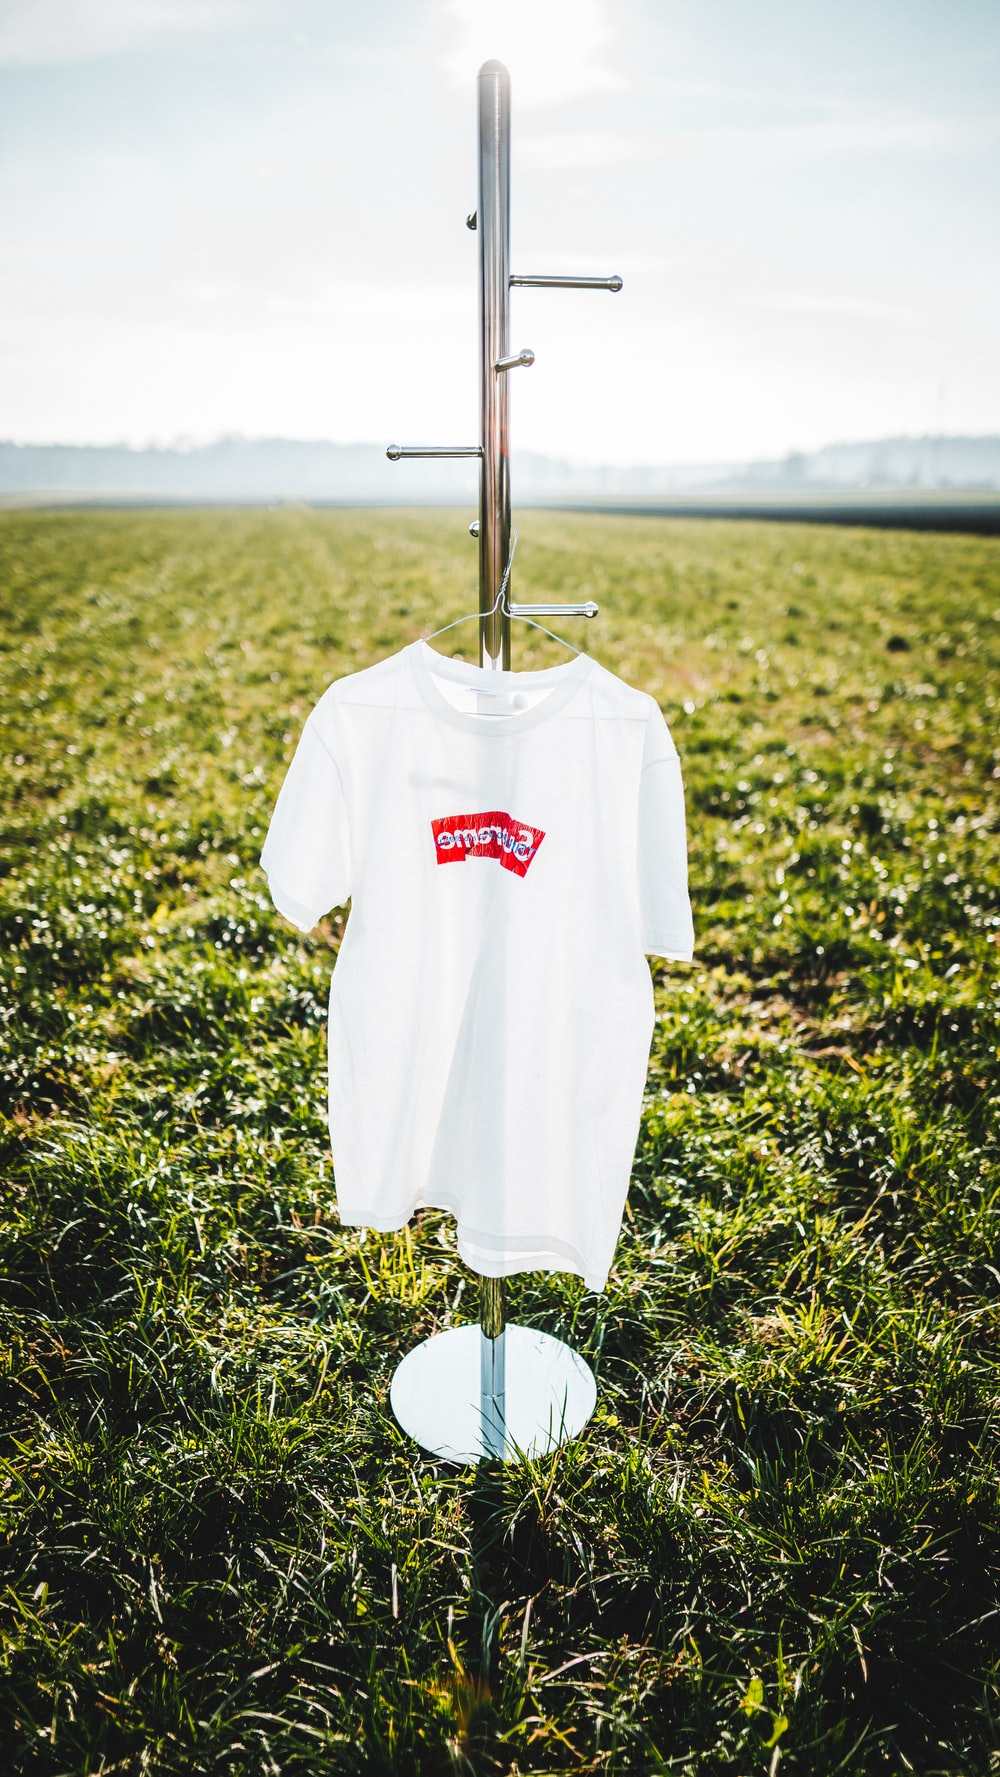 hanged white and red crew-neck shirt on display rack on green grass